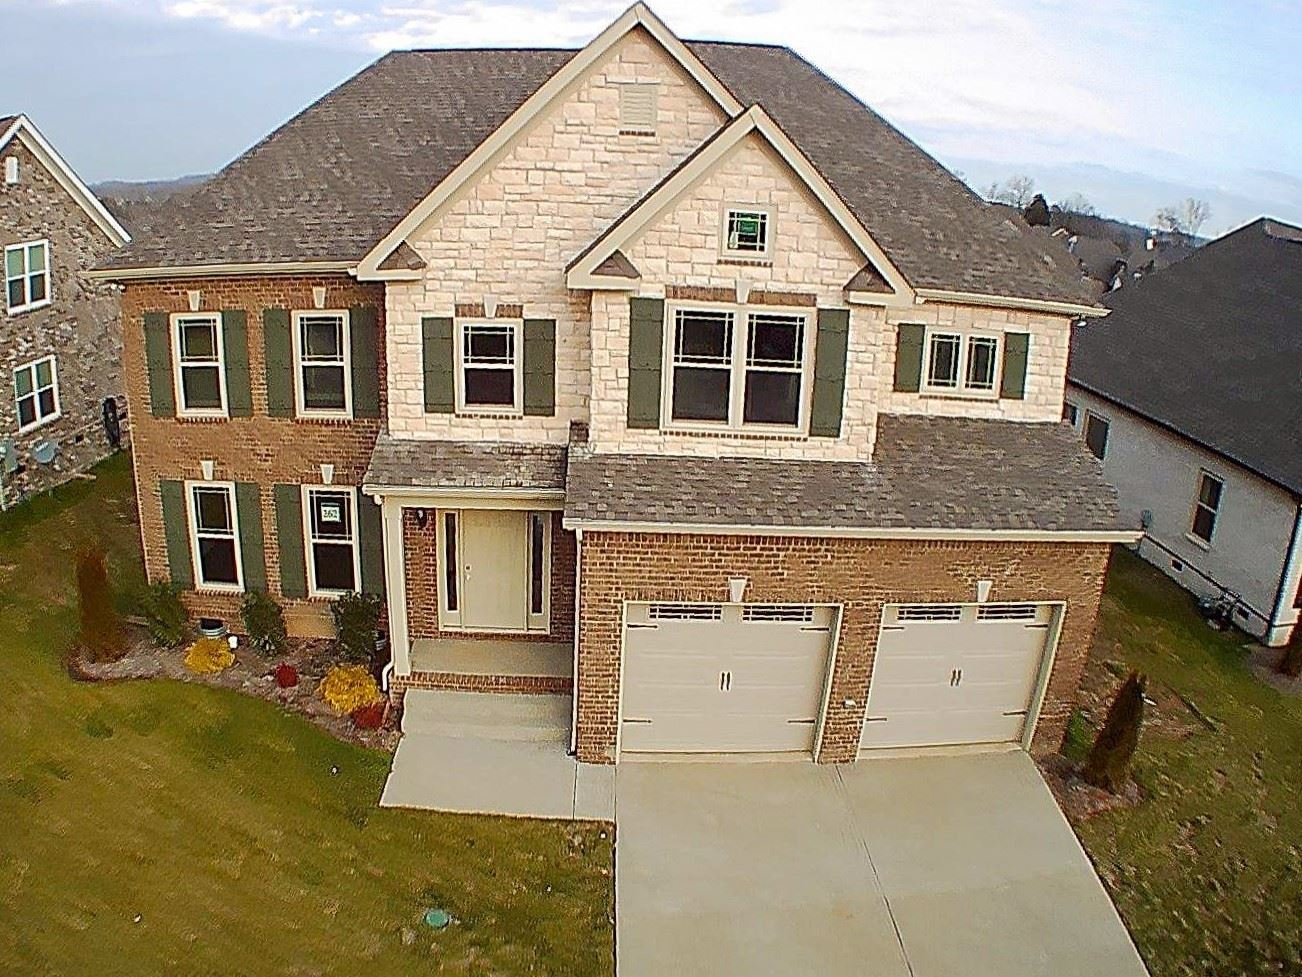 Photo of 2018 Lequire Ln Lot 262, Spring Hill, TN 37174 (MLS # 2125262)